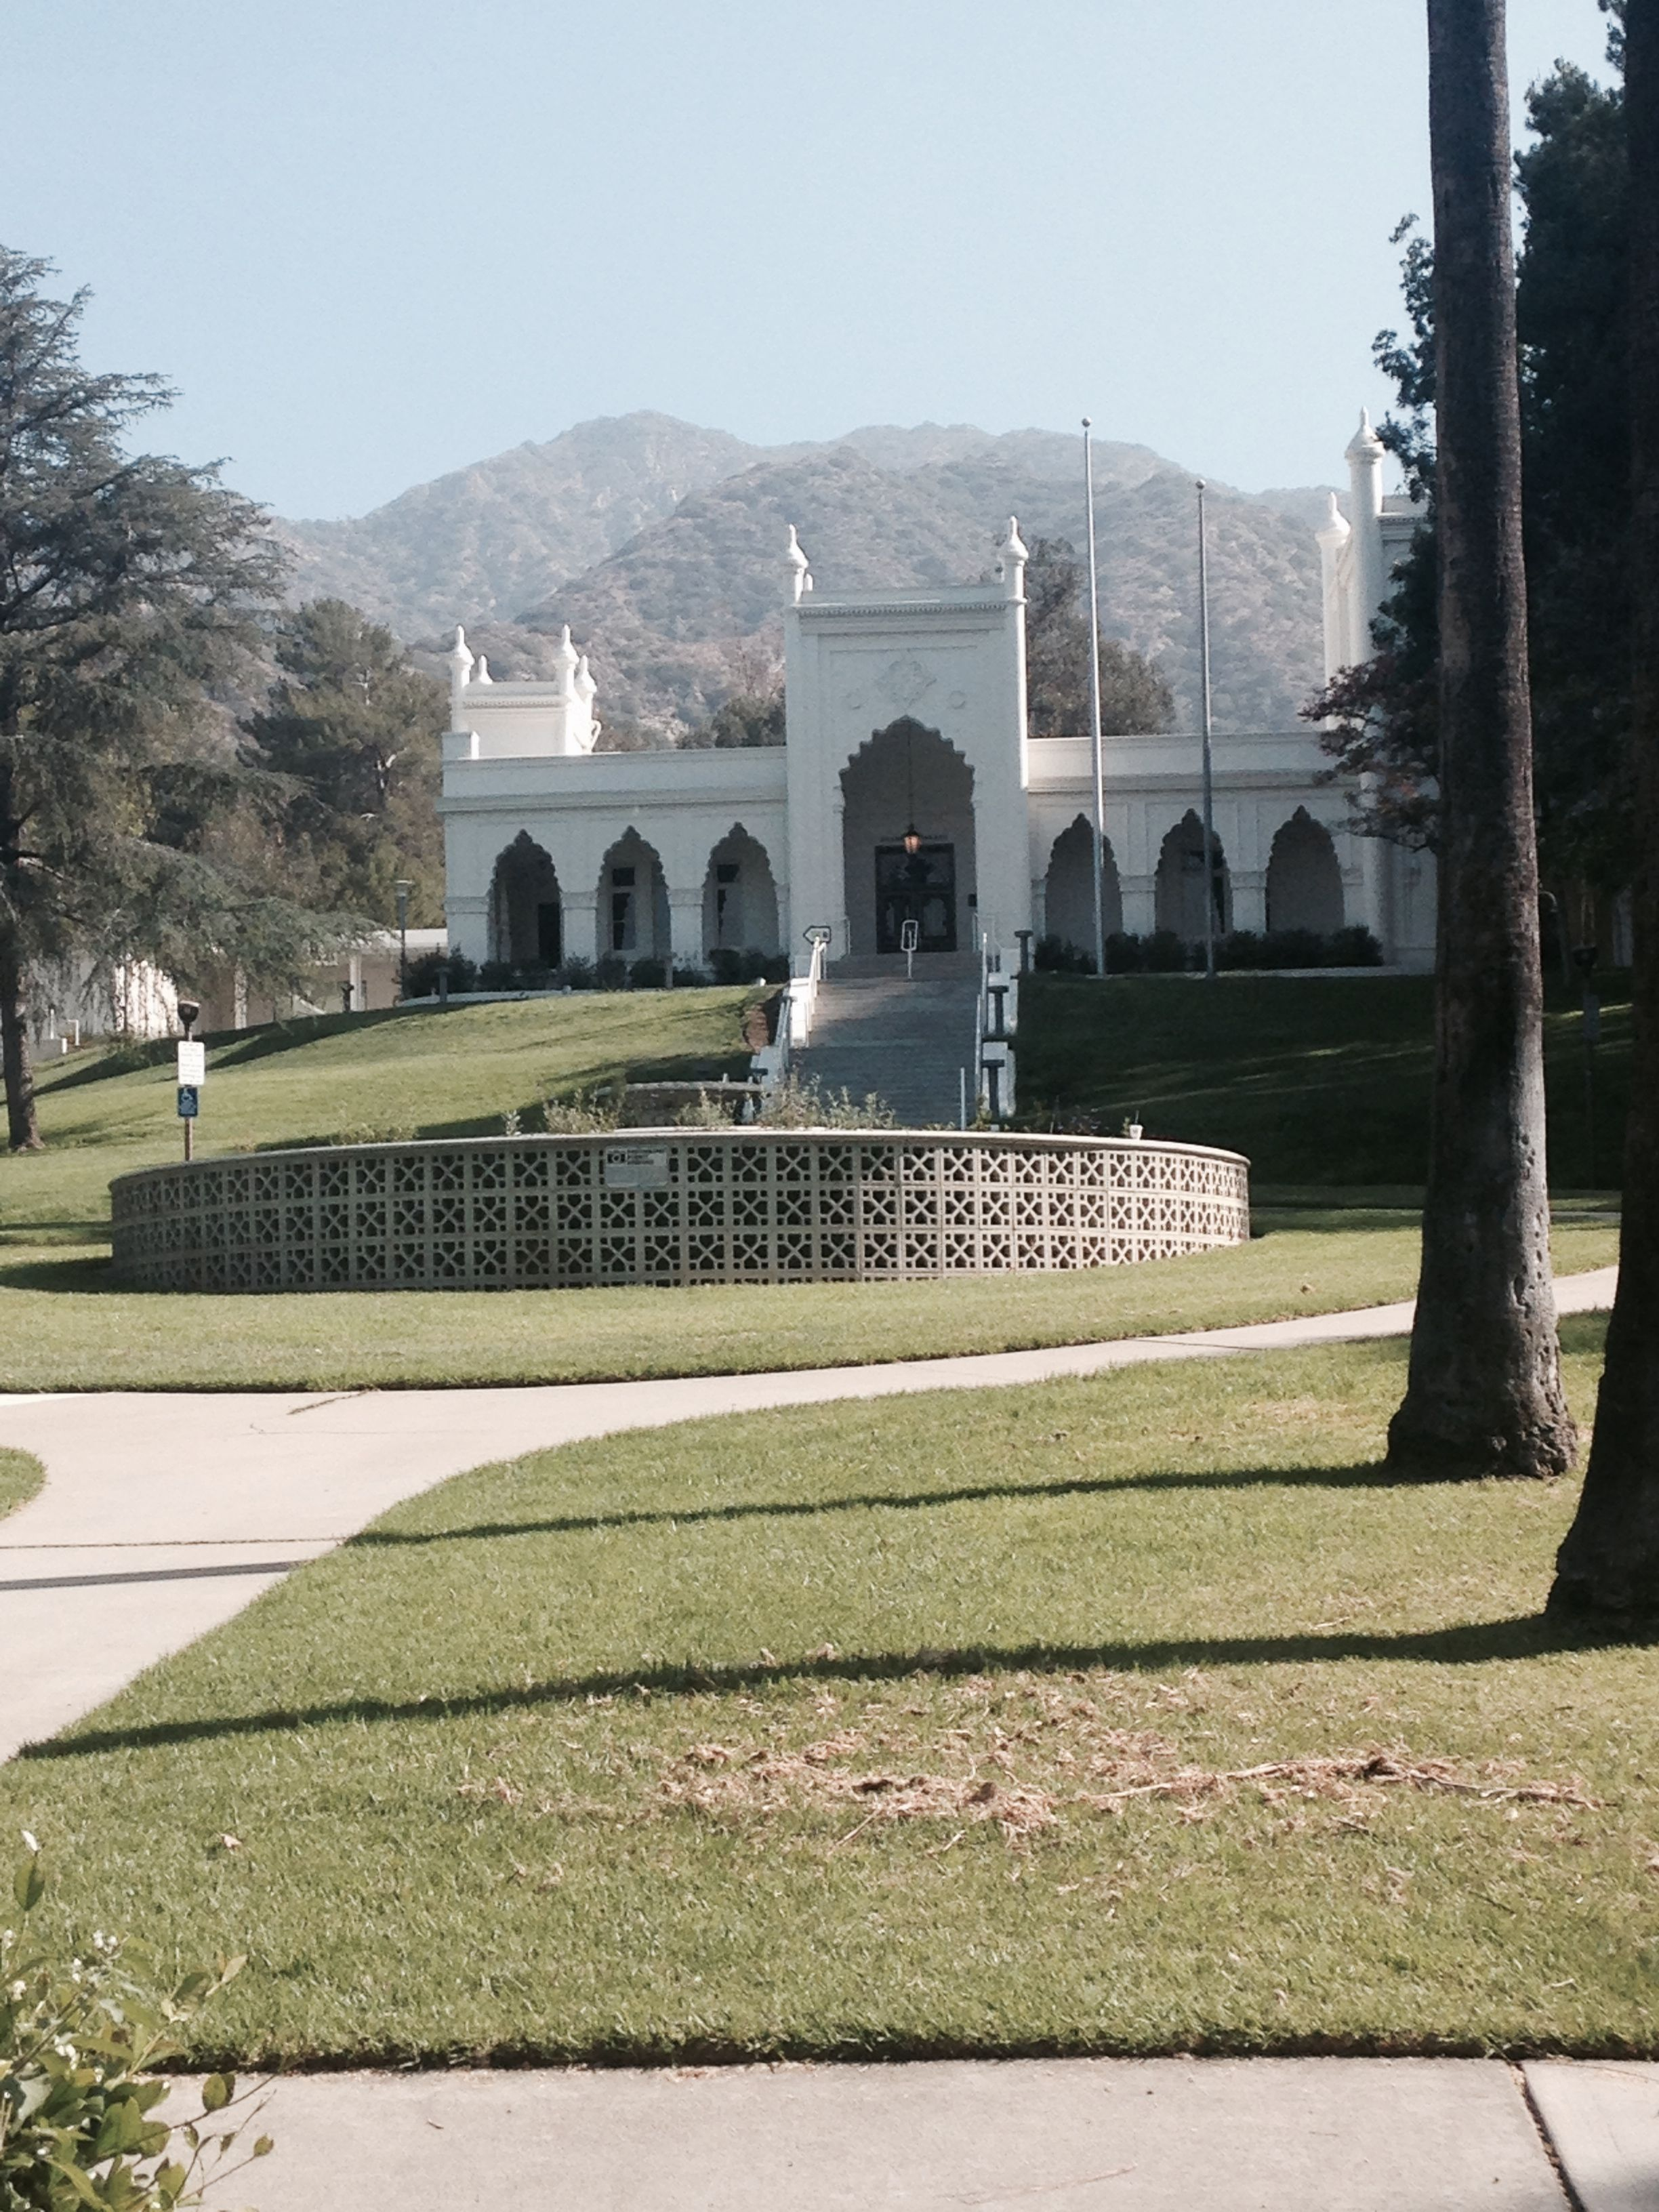 The Brand Library and Art Center, Glendale, high in the hills.